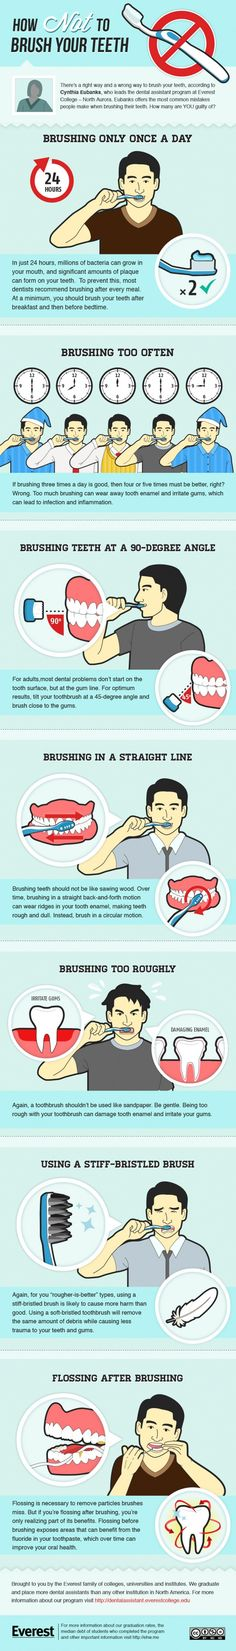 how-not-to brush teeth